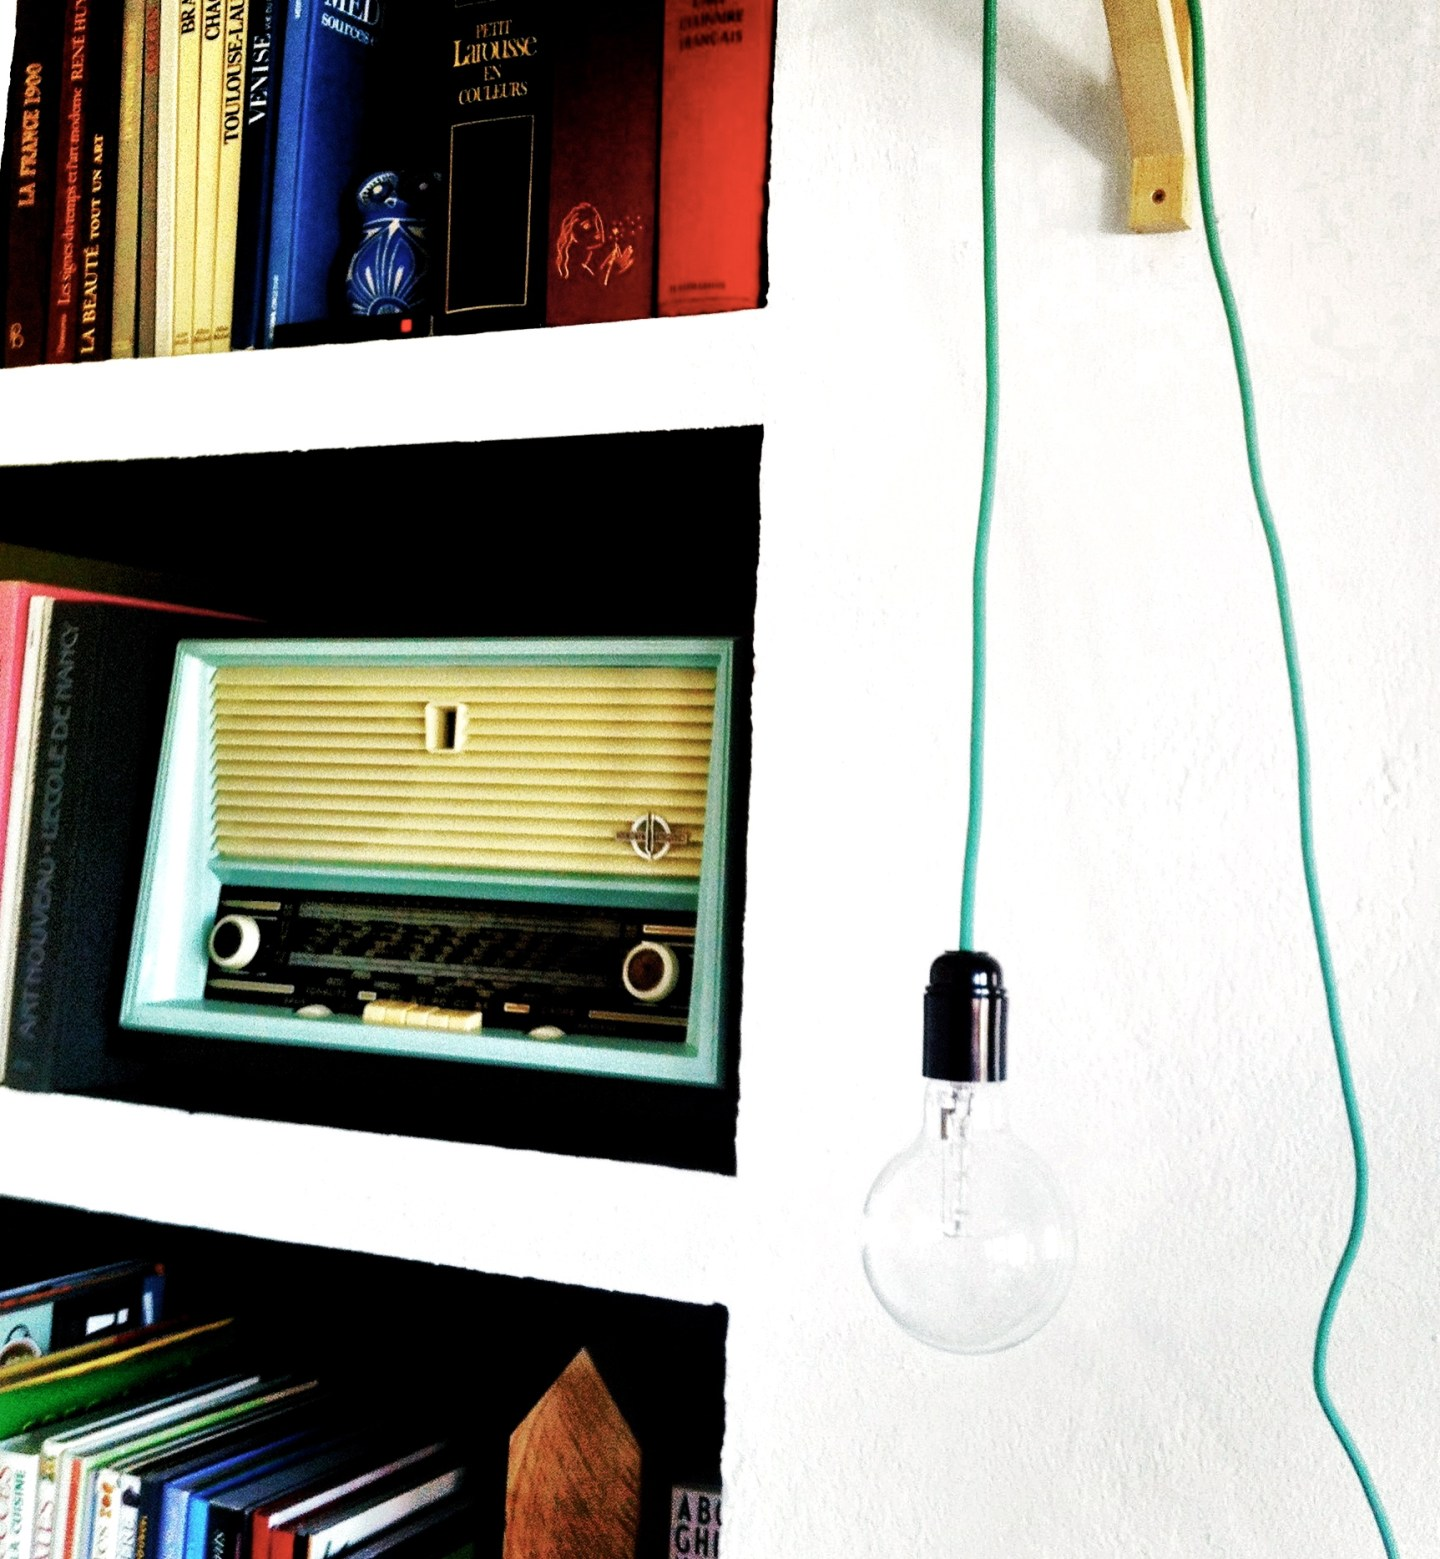 At home: Ma nouvelle lampe DIY !